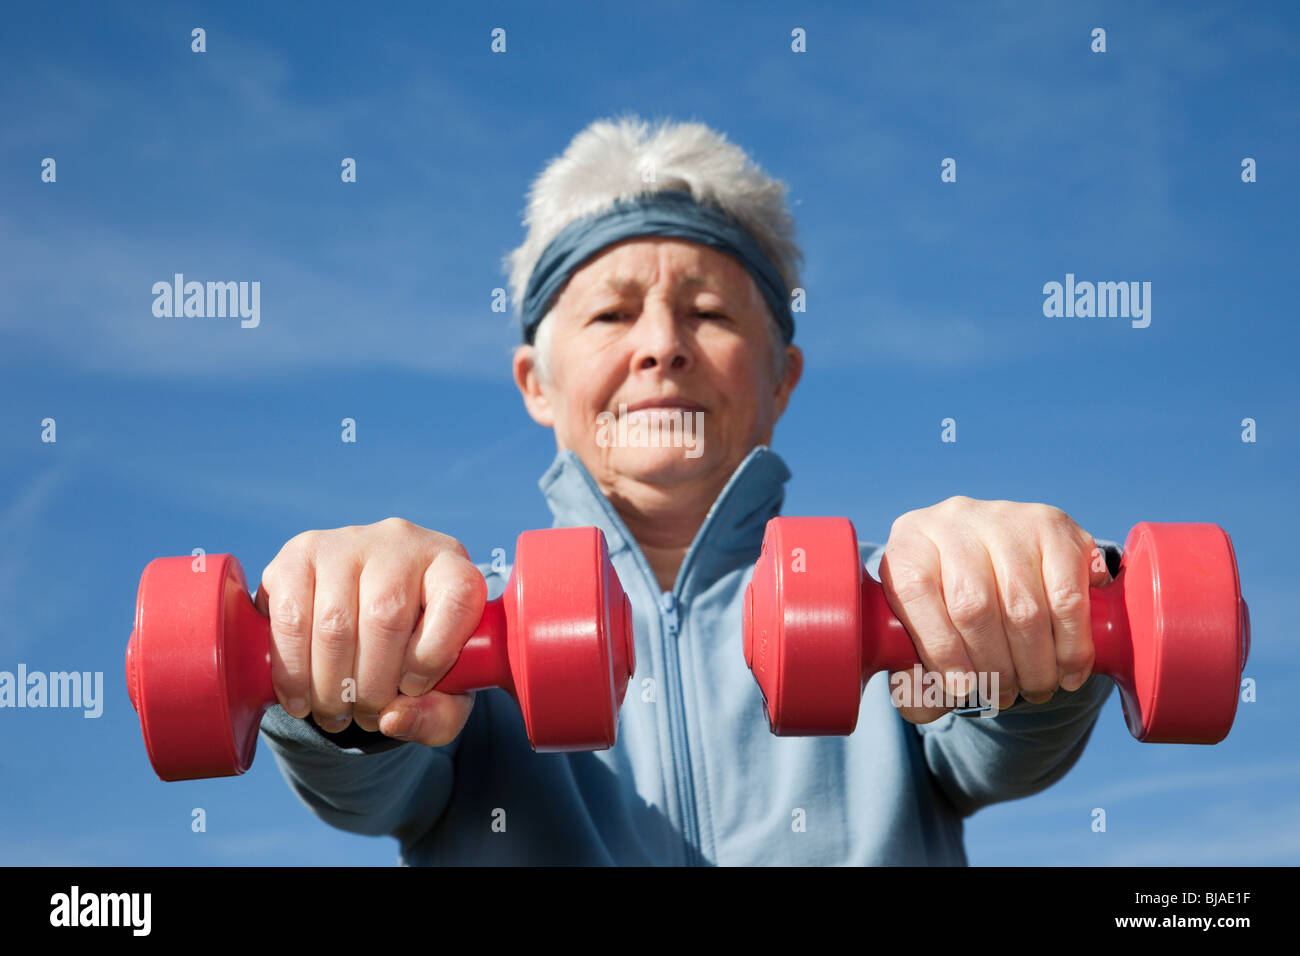 Active senior woman exercising with dumbbell hand weights workout outdoors to keep fit. Healthy lifestyle wellness - Stock Image